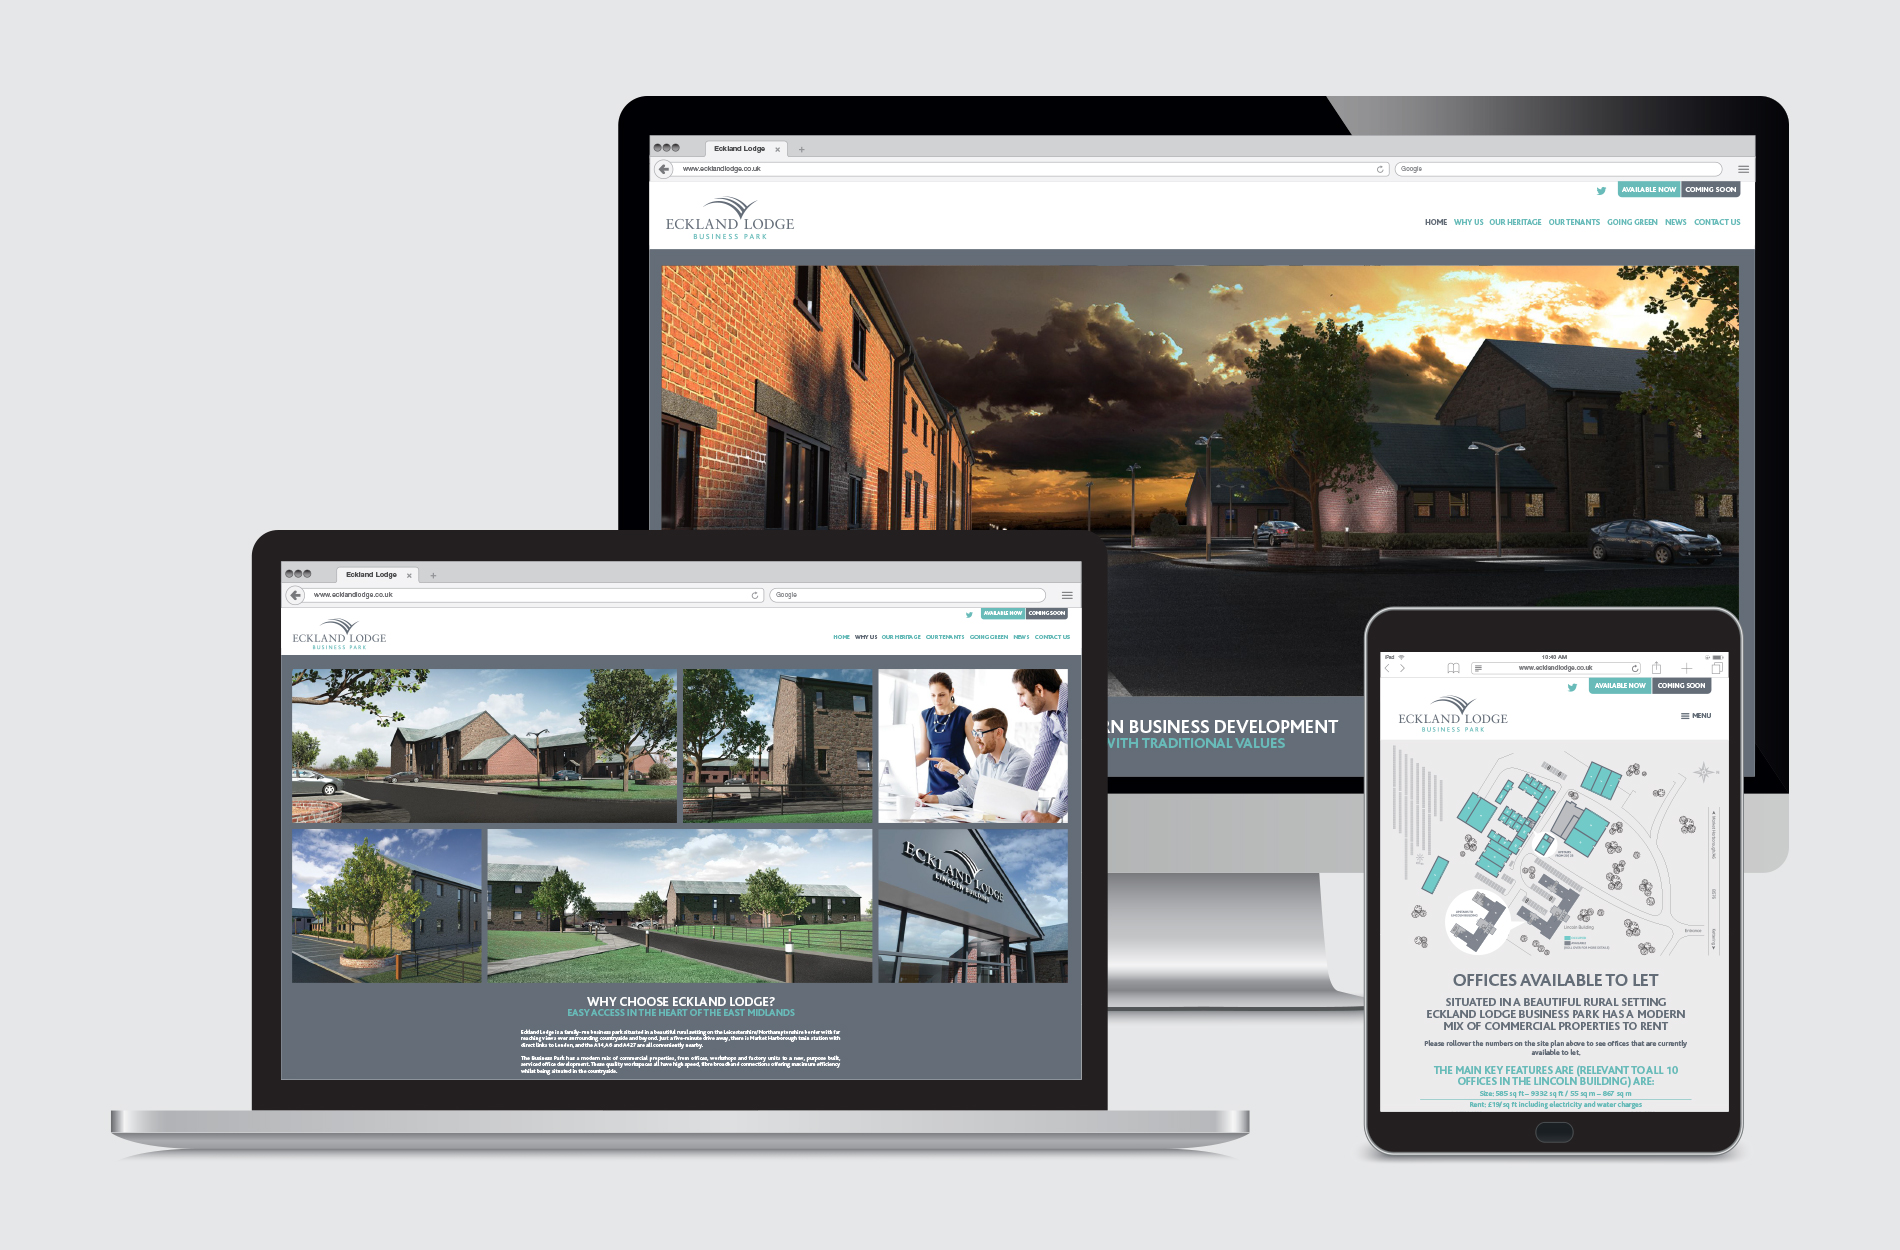 Joomla content managed website for Eckland Lodge Business Park